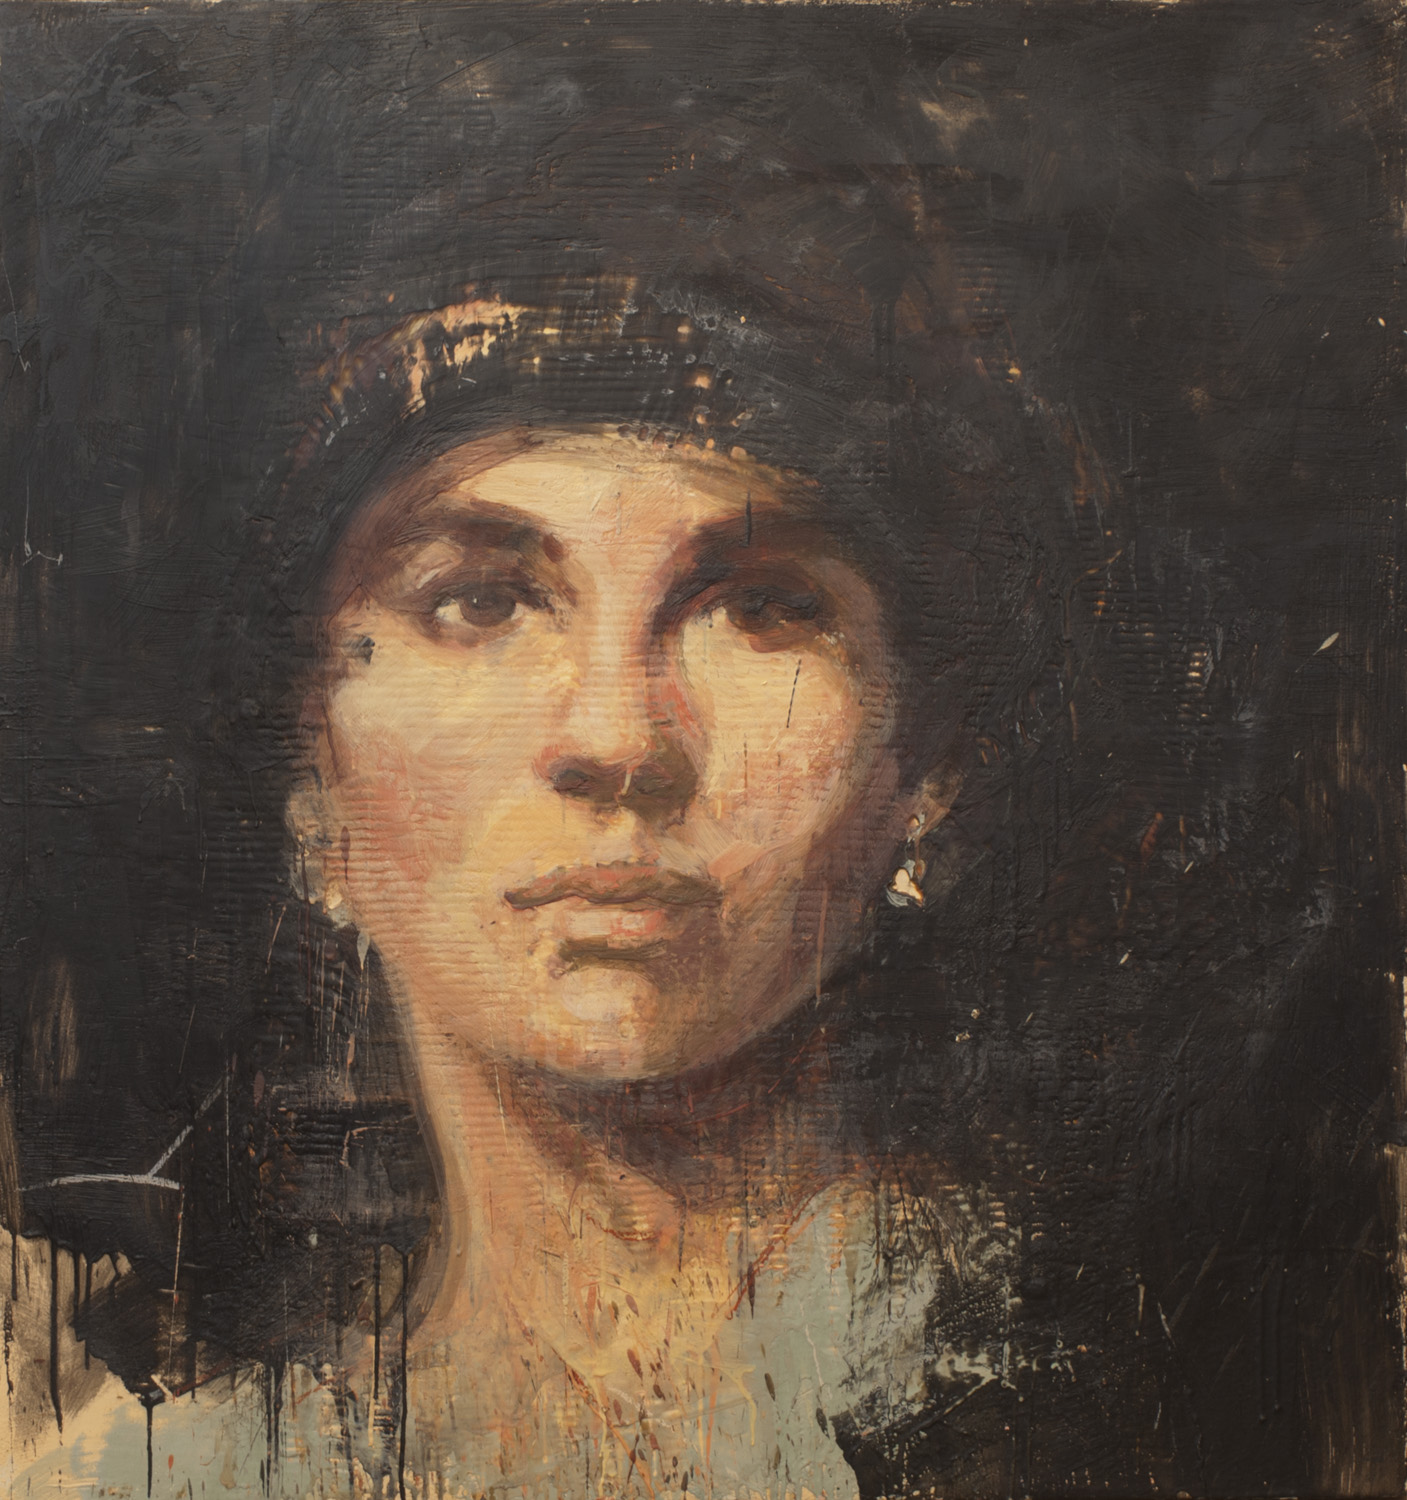 An Unnamed Suffragette, 2014, encaustic on canvas, 48x 45 inches